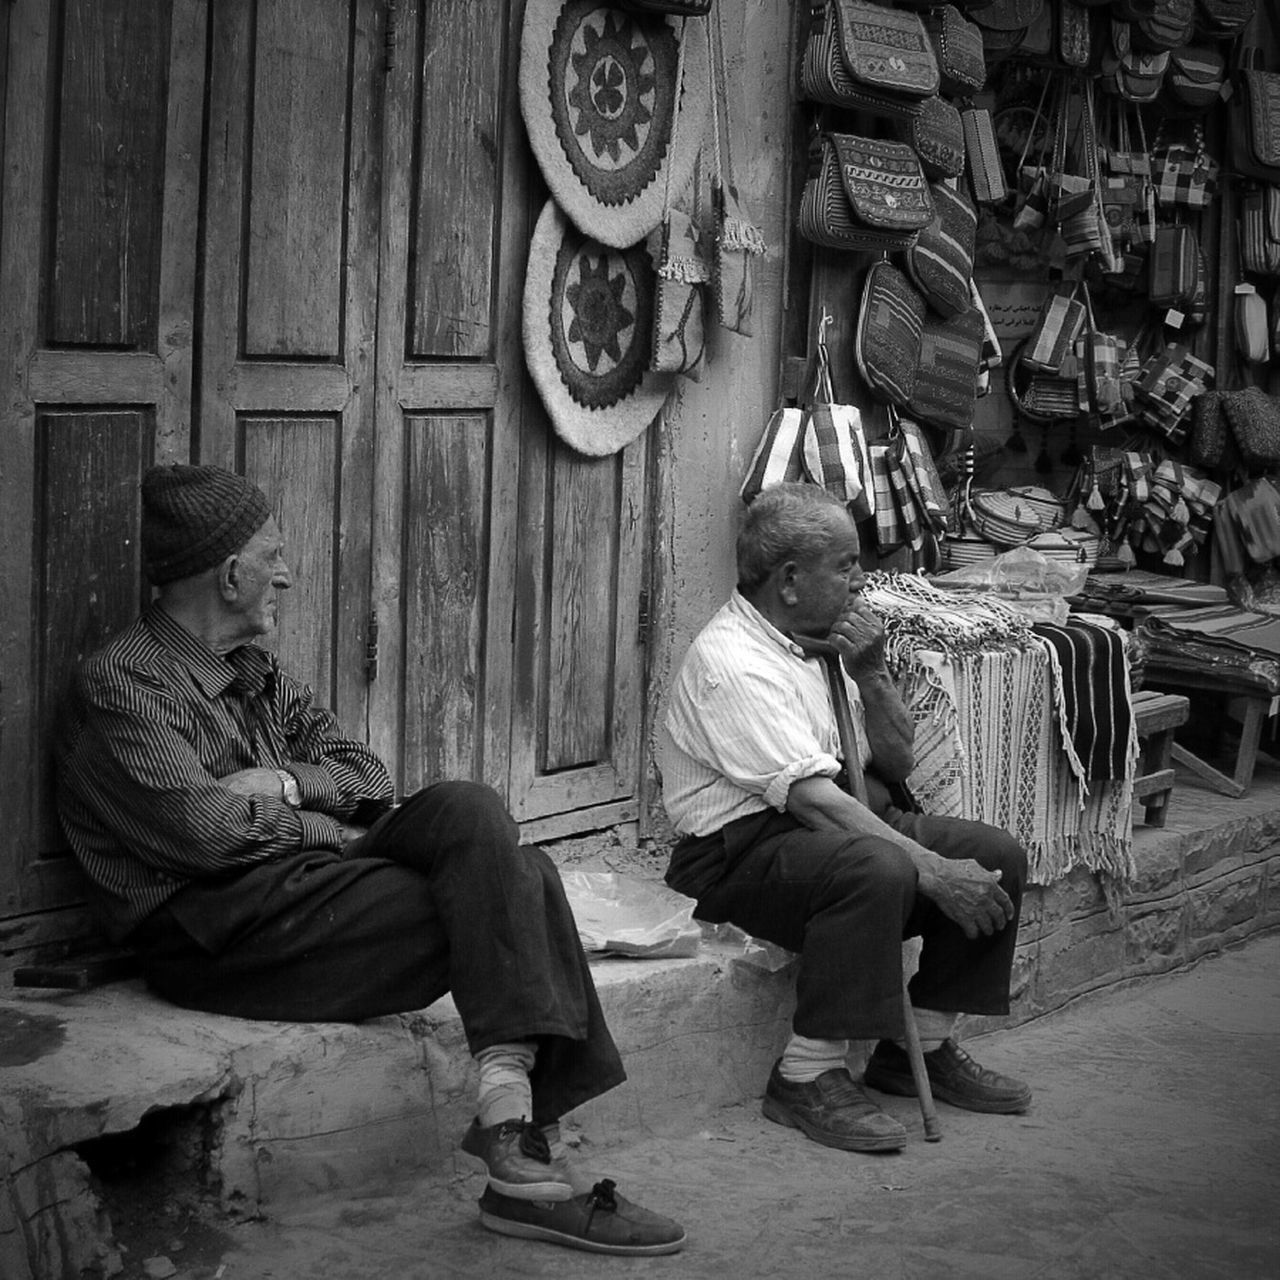 Rural Scenes Common Rural People Shades Of Grey Outdoor Photography Getting Inspired Urban Lifestyle Iran♥ Telling Stories Differently Monochrome The Photojournalist - 2016 EyeEm Awards The Portraitist - 2016 EyeEm Awards The Street Photographer - 2016 EyeEm Awards Ordinarypeople Popular Photos in North Of Iran